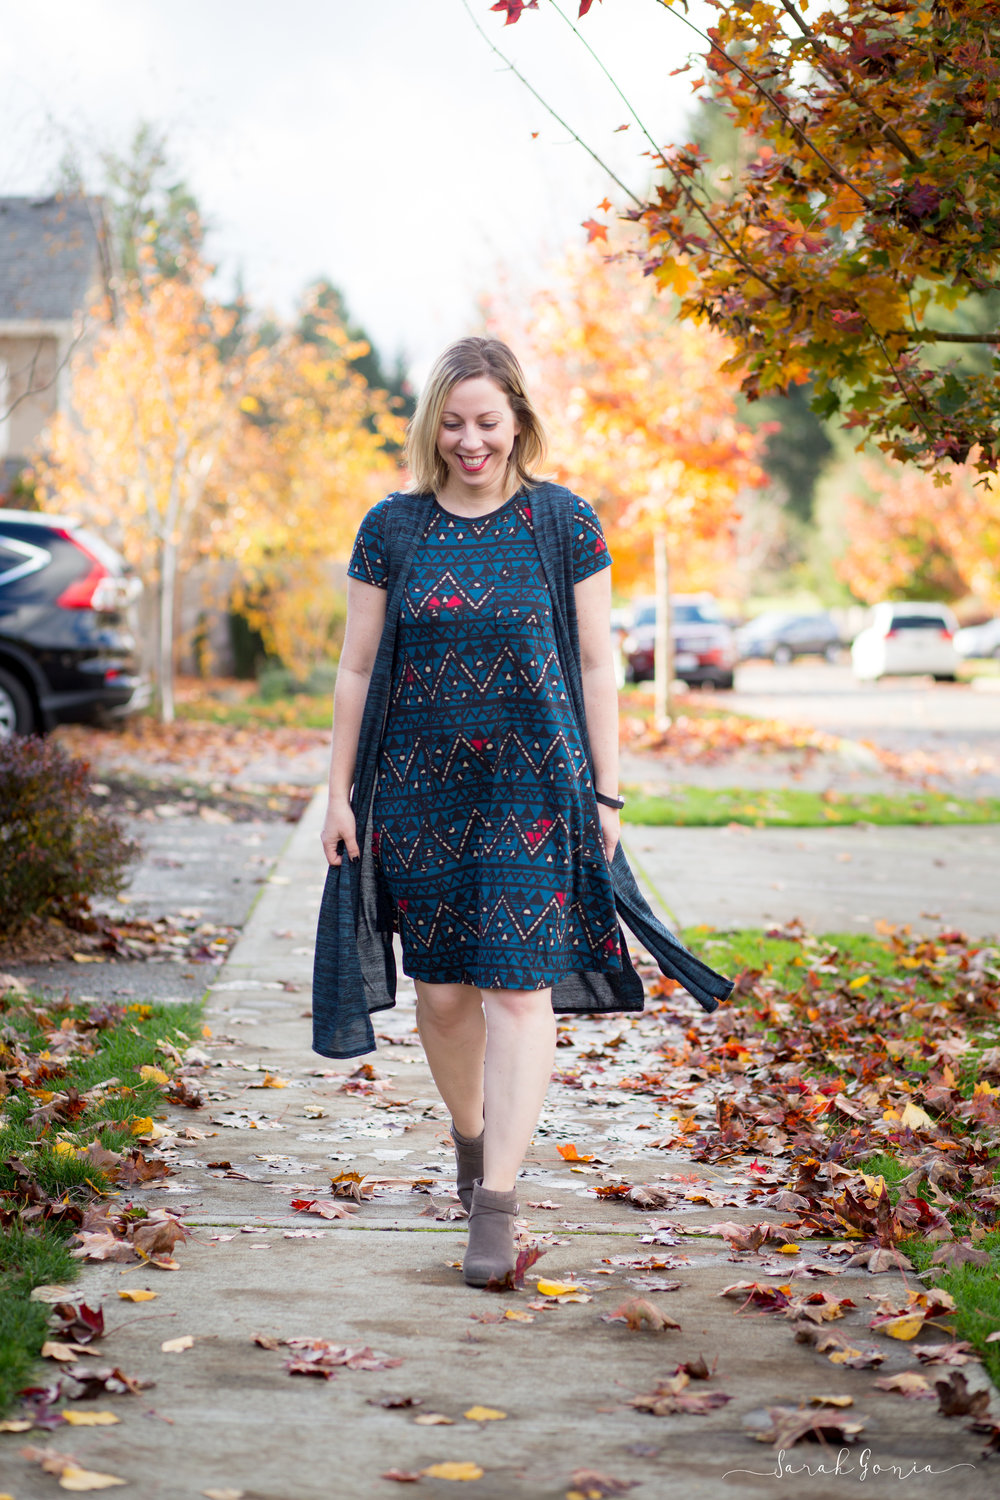 Meet Kristin! The mastermind behind the Lularoe Self-Love experience. Isn't she gorgeous!